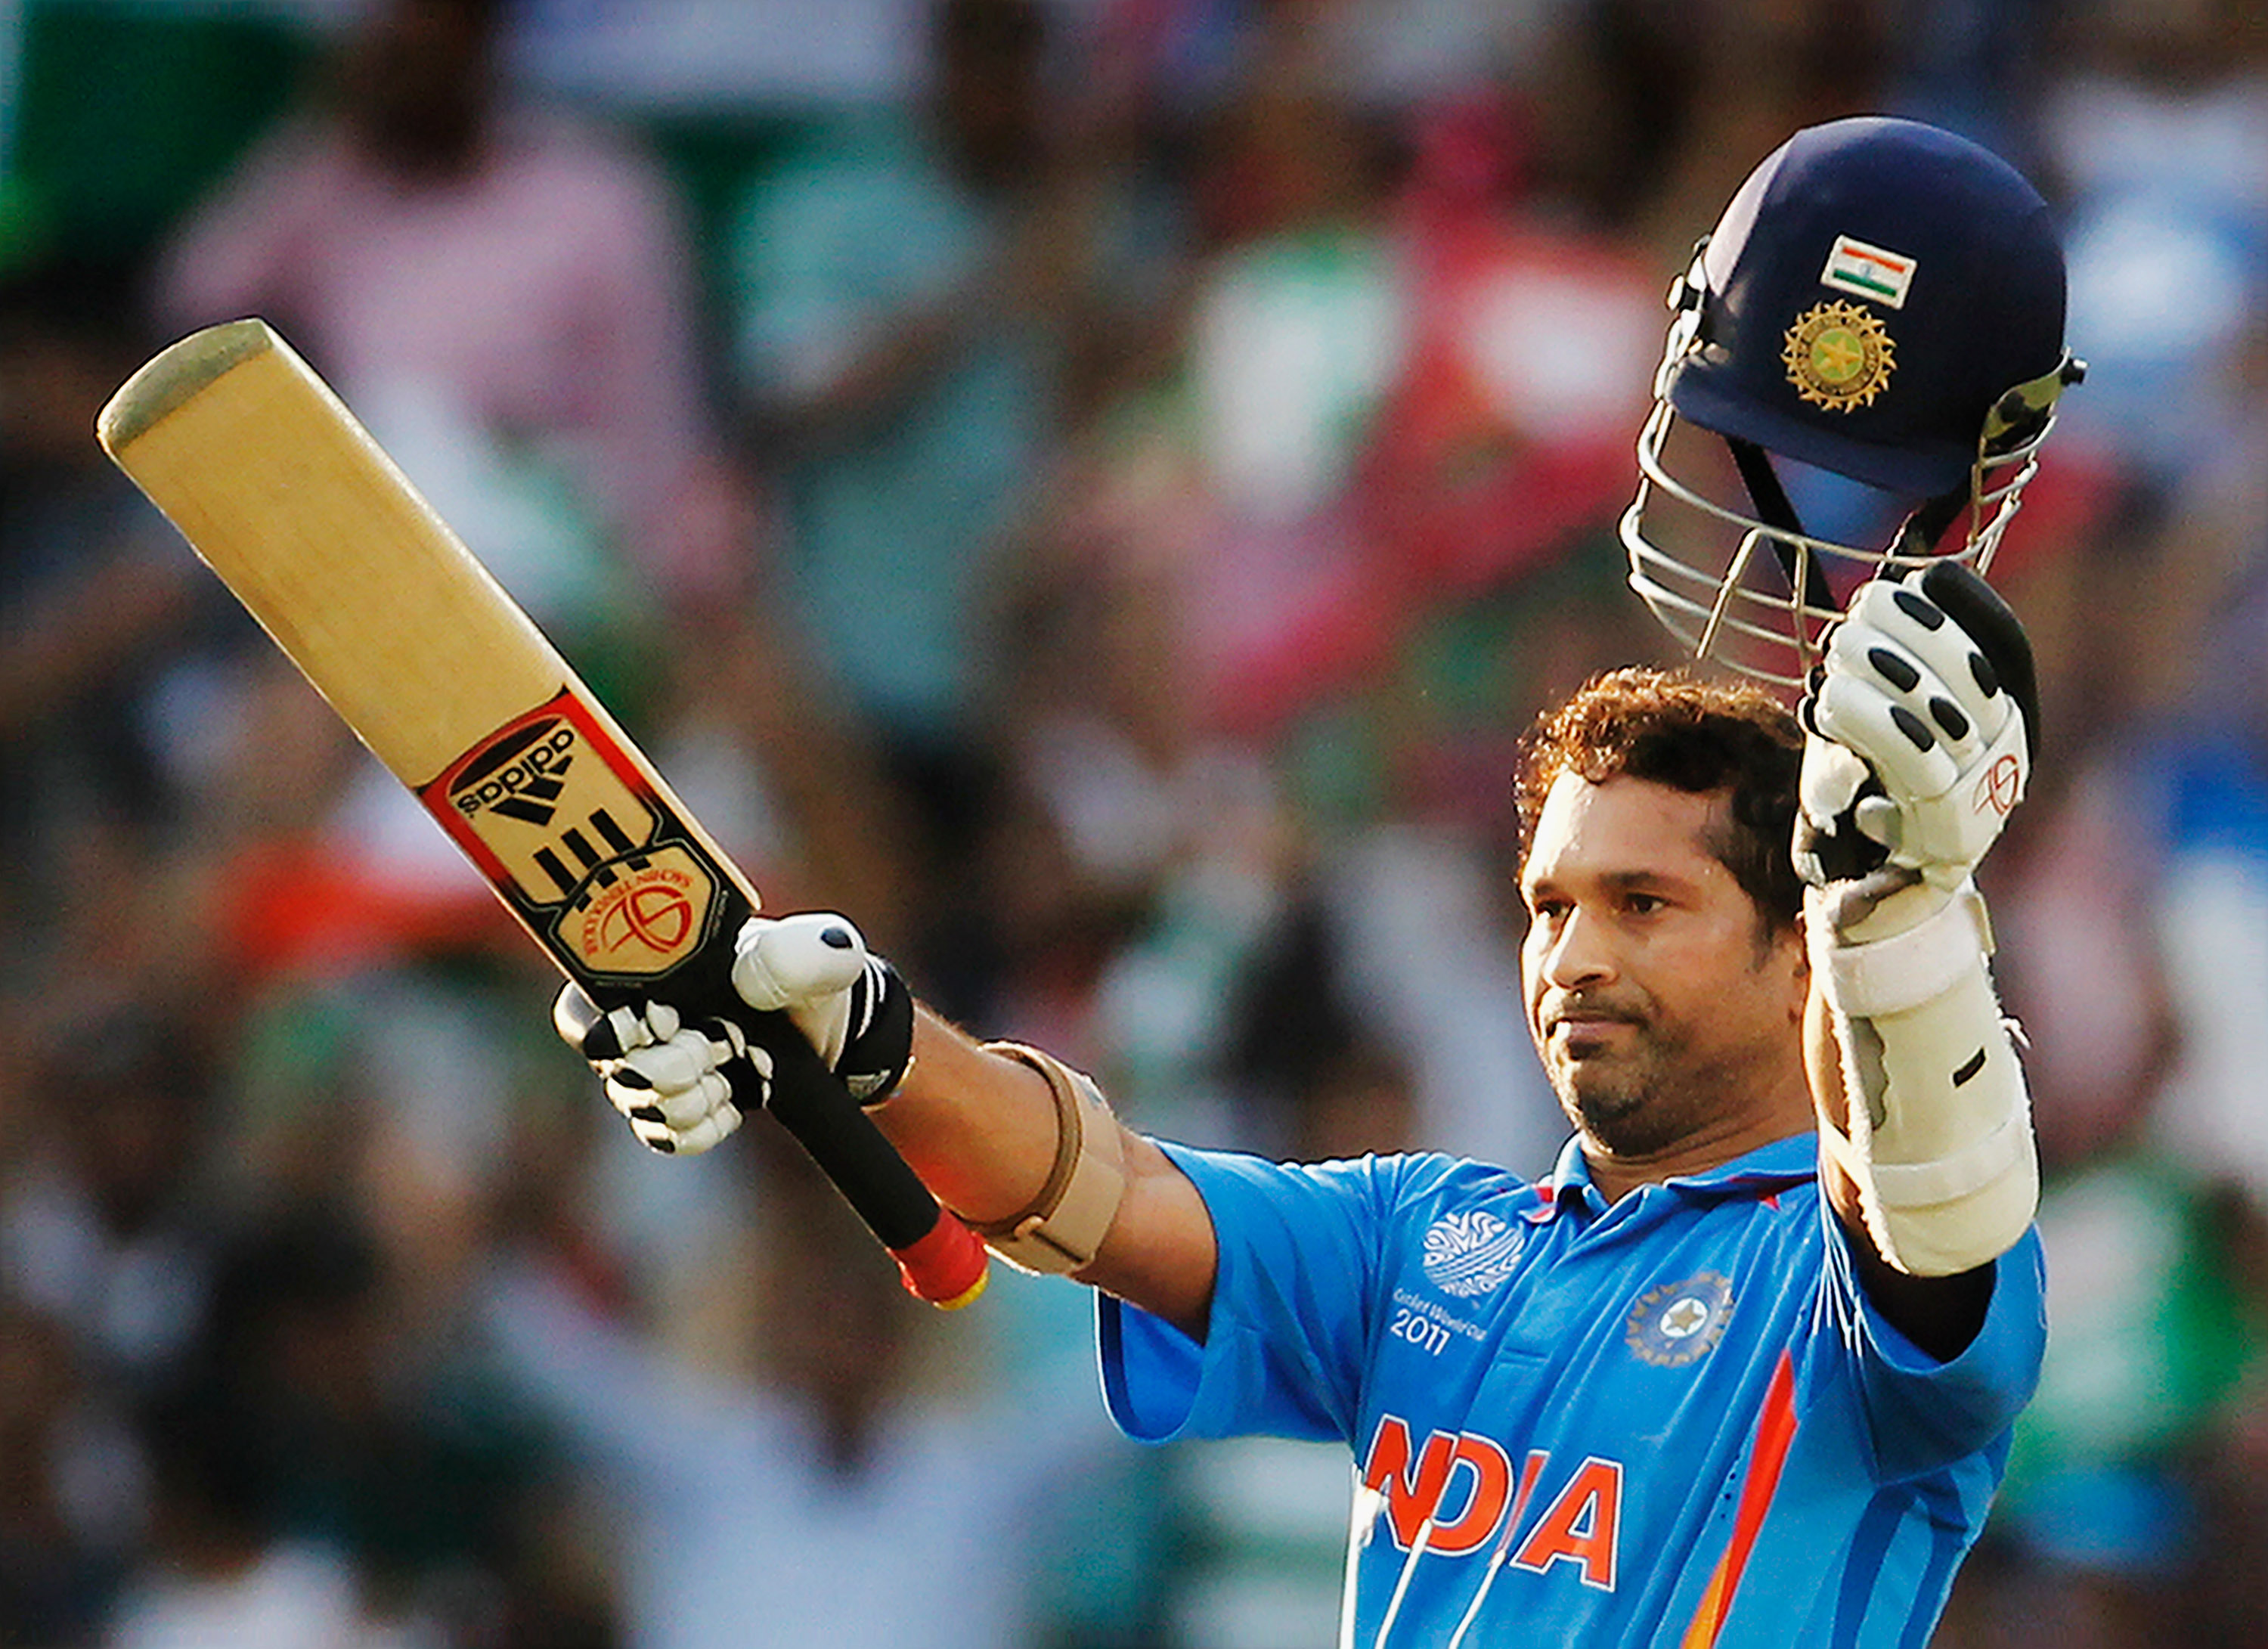 Sachin - He is more than a legend